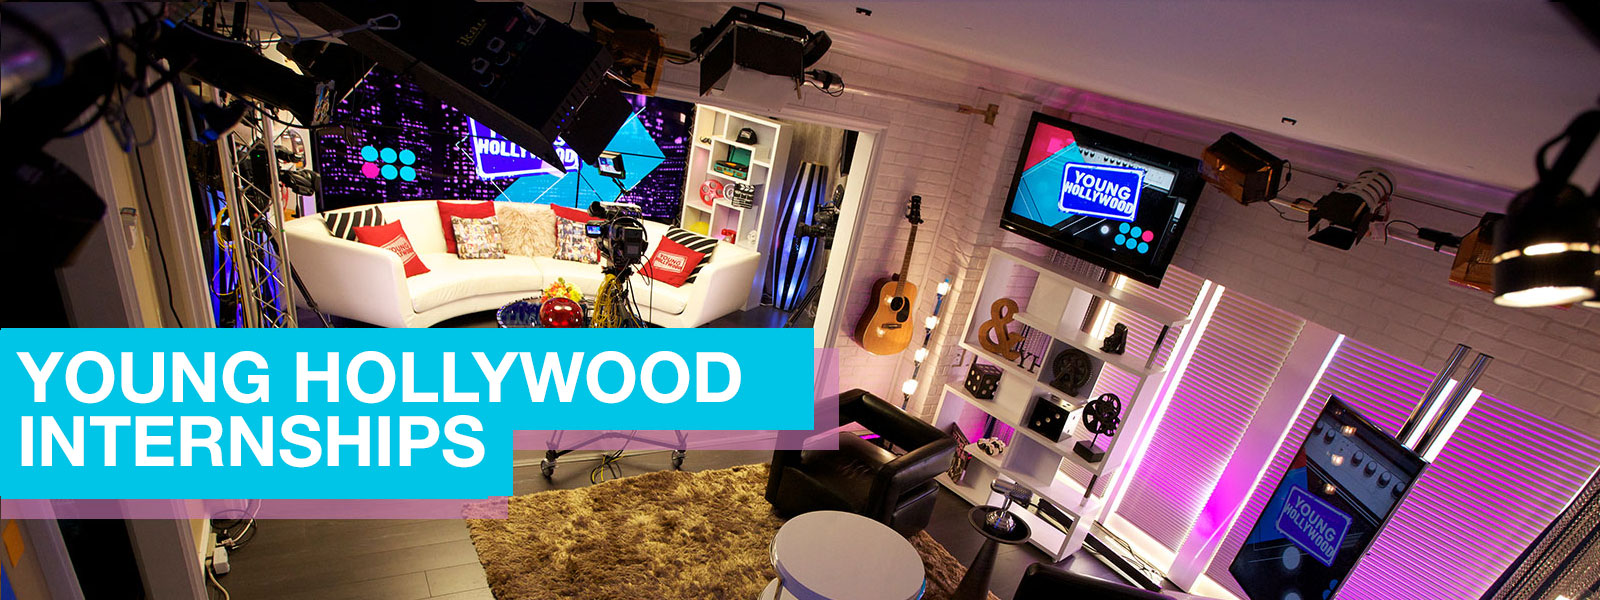 Younghollywood Internships